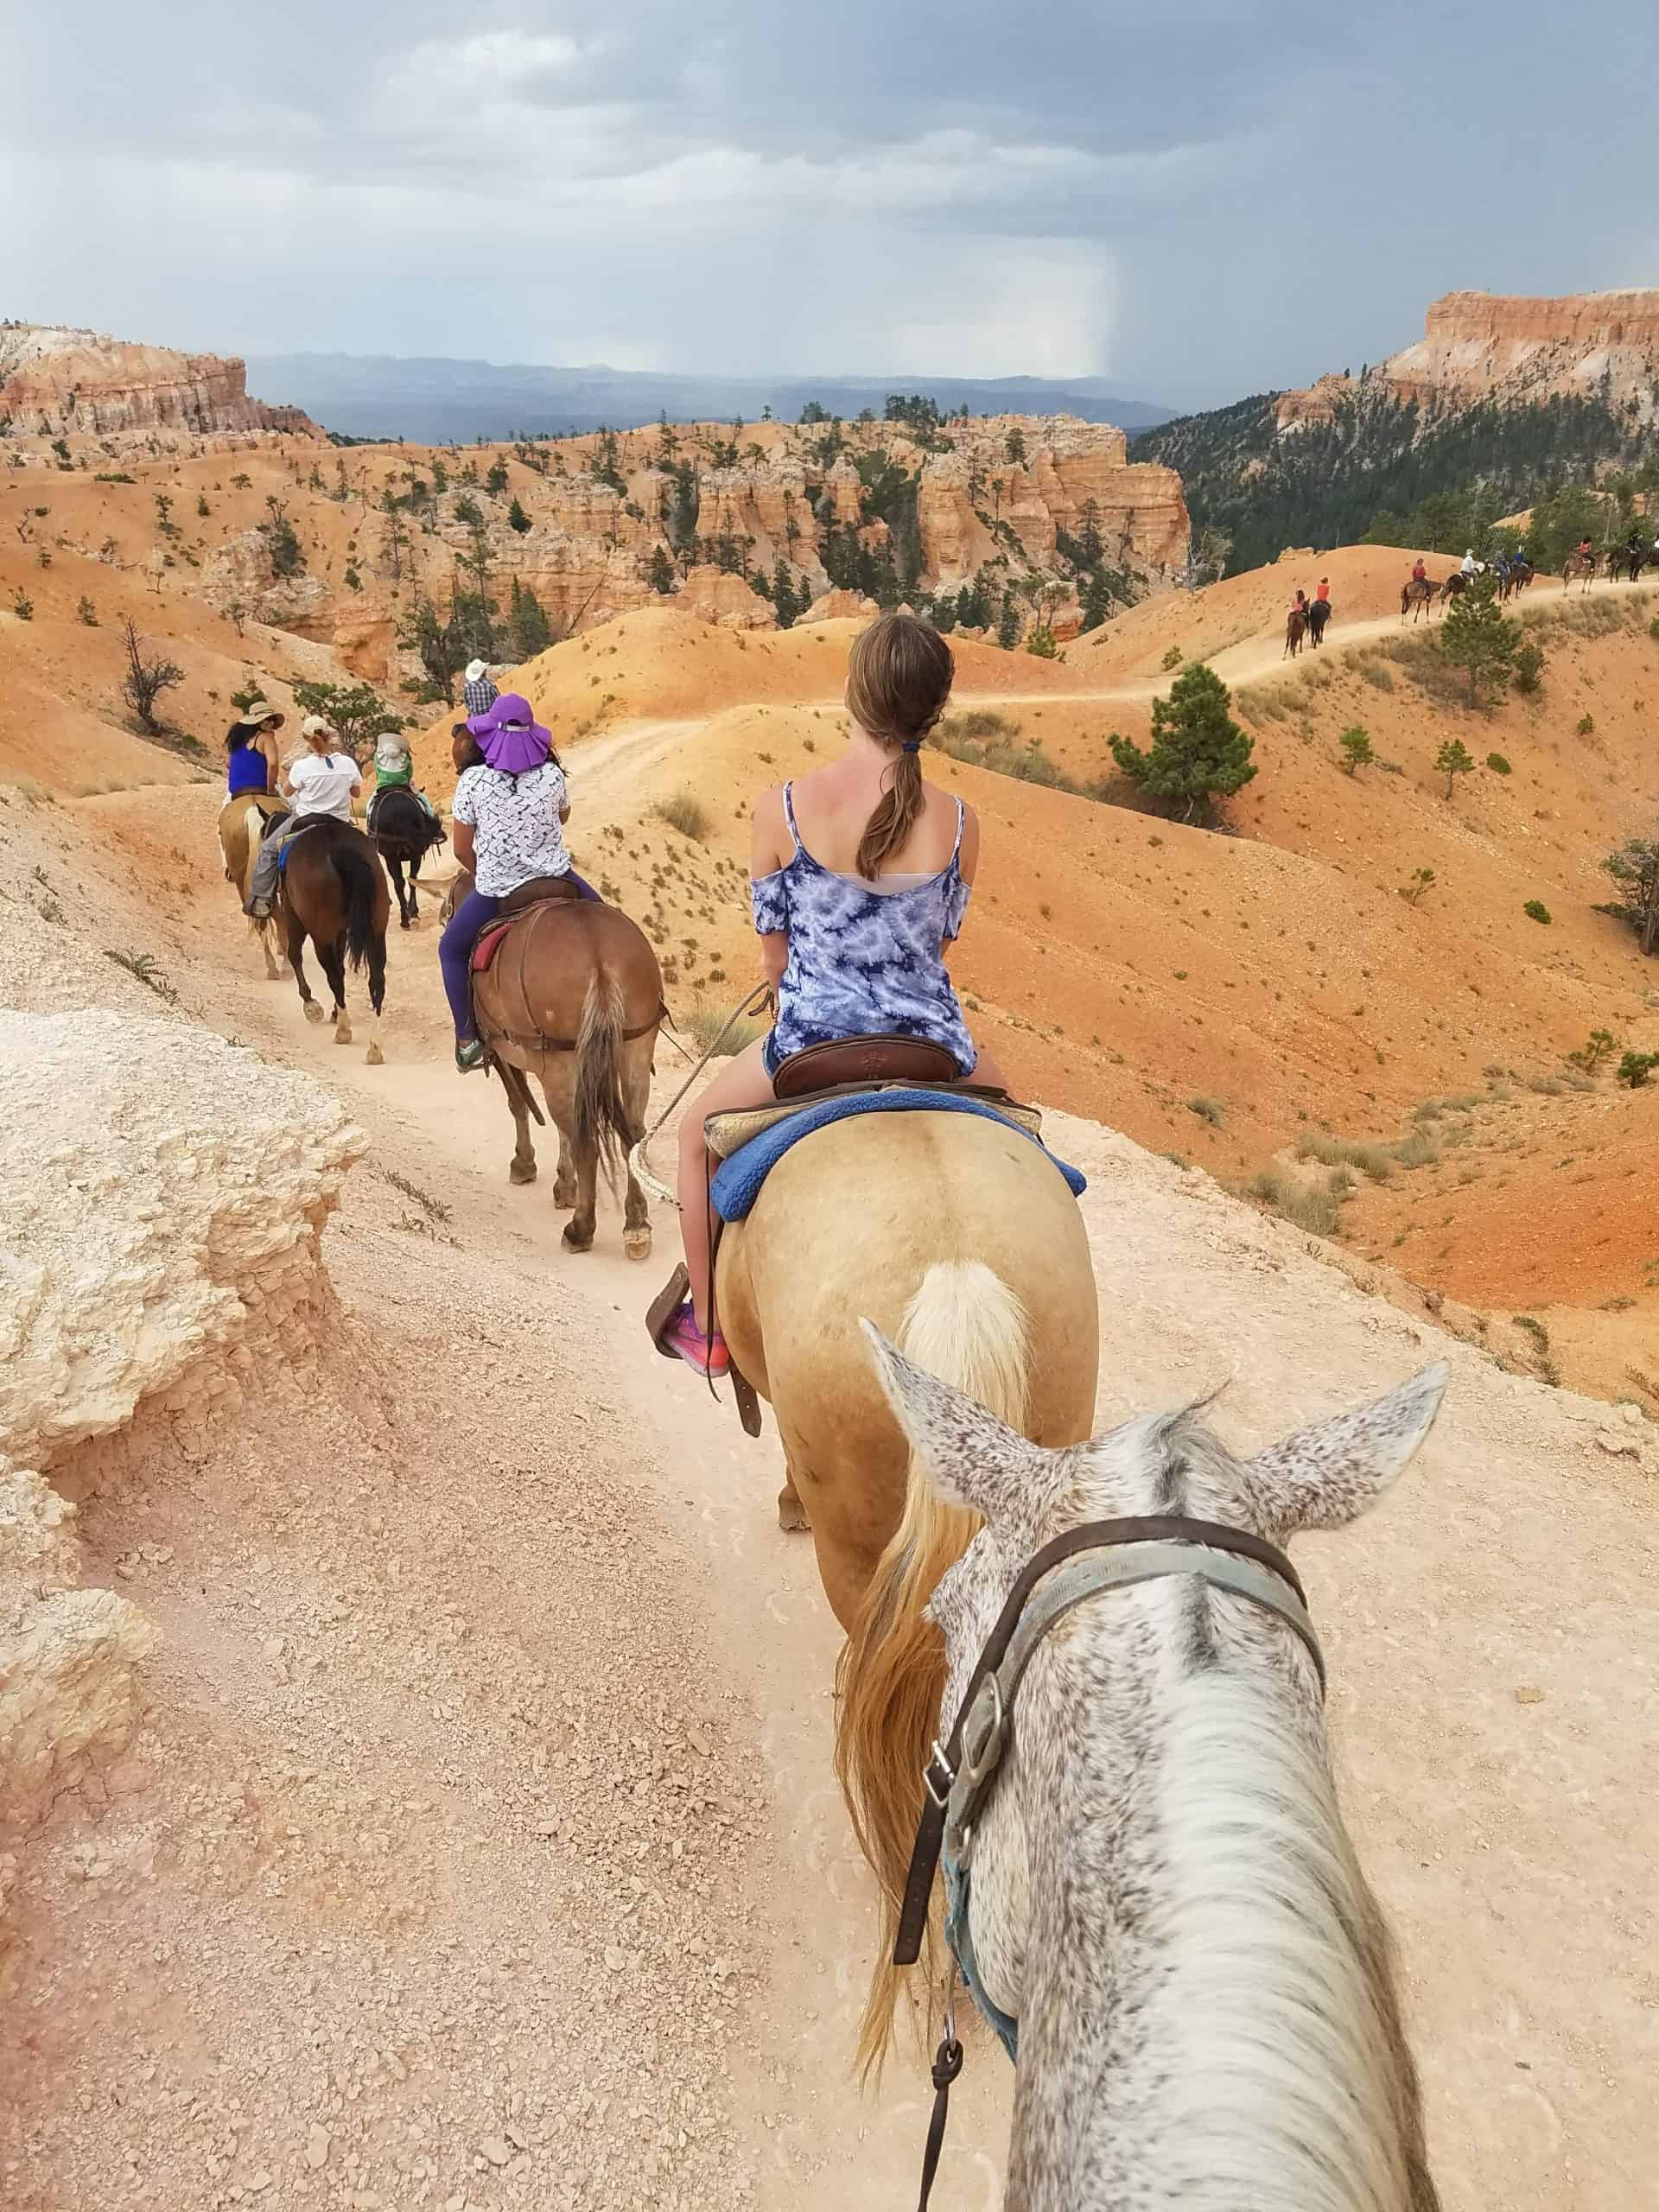 Horseback riding at Bryce Canyon is a thrill!